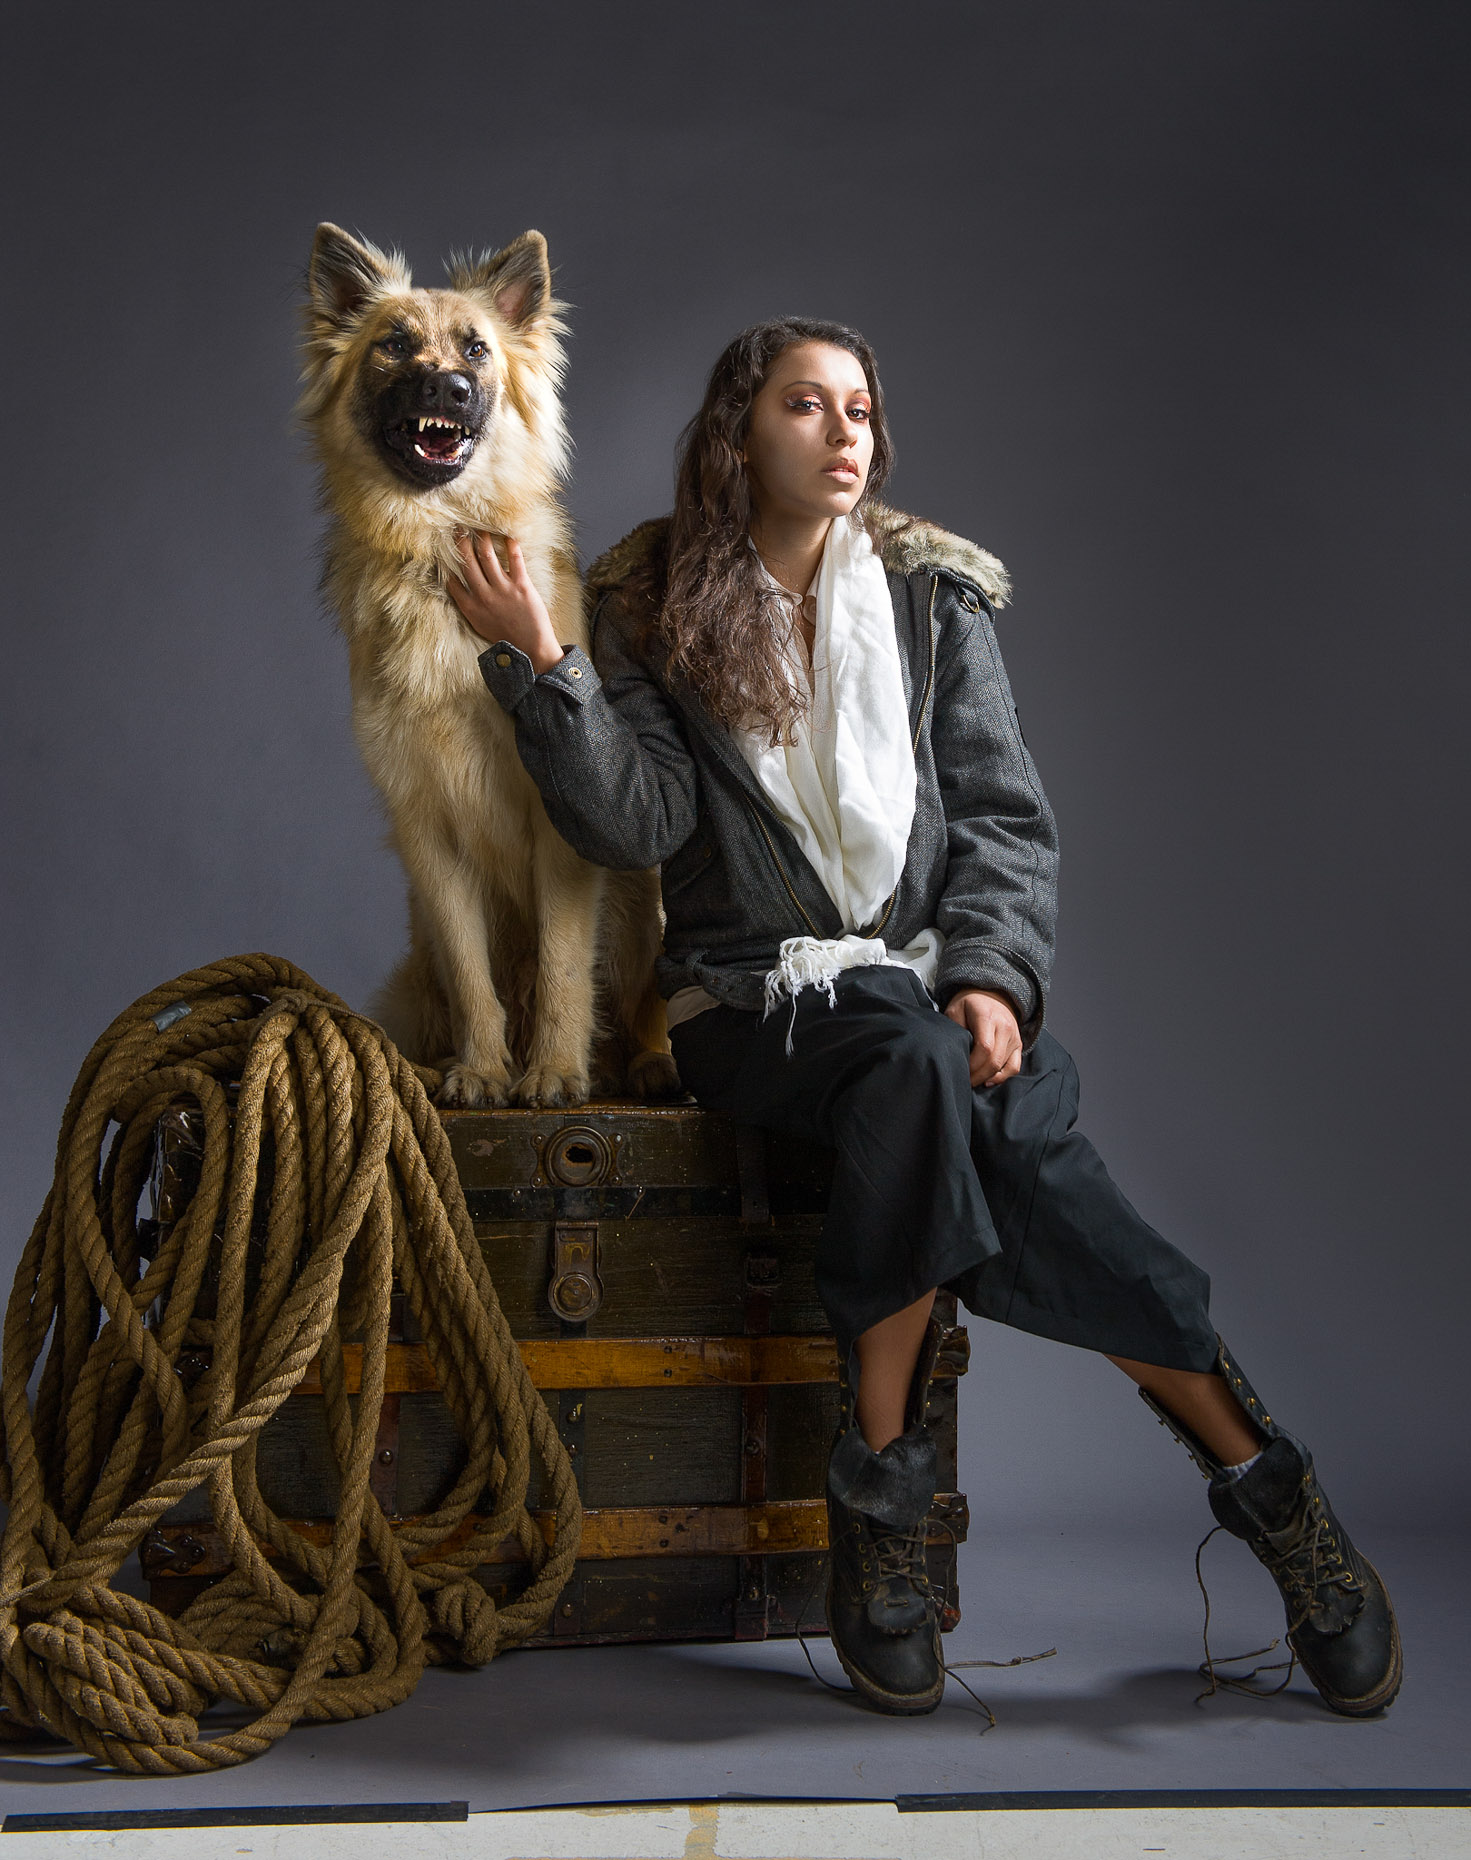 Dramatic studio fashion portrait of young woman explorer